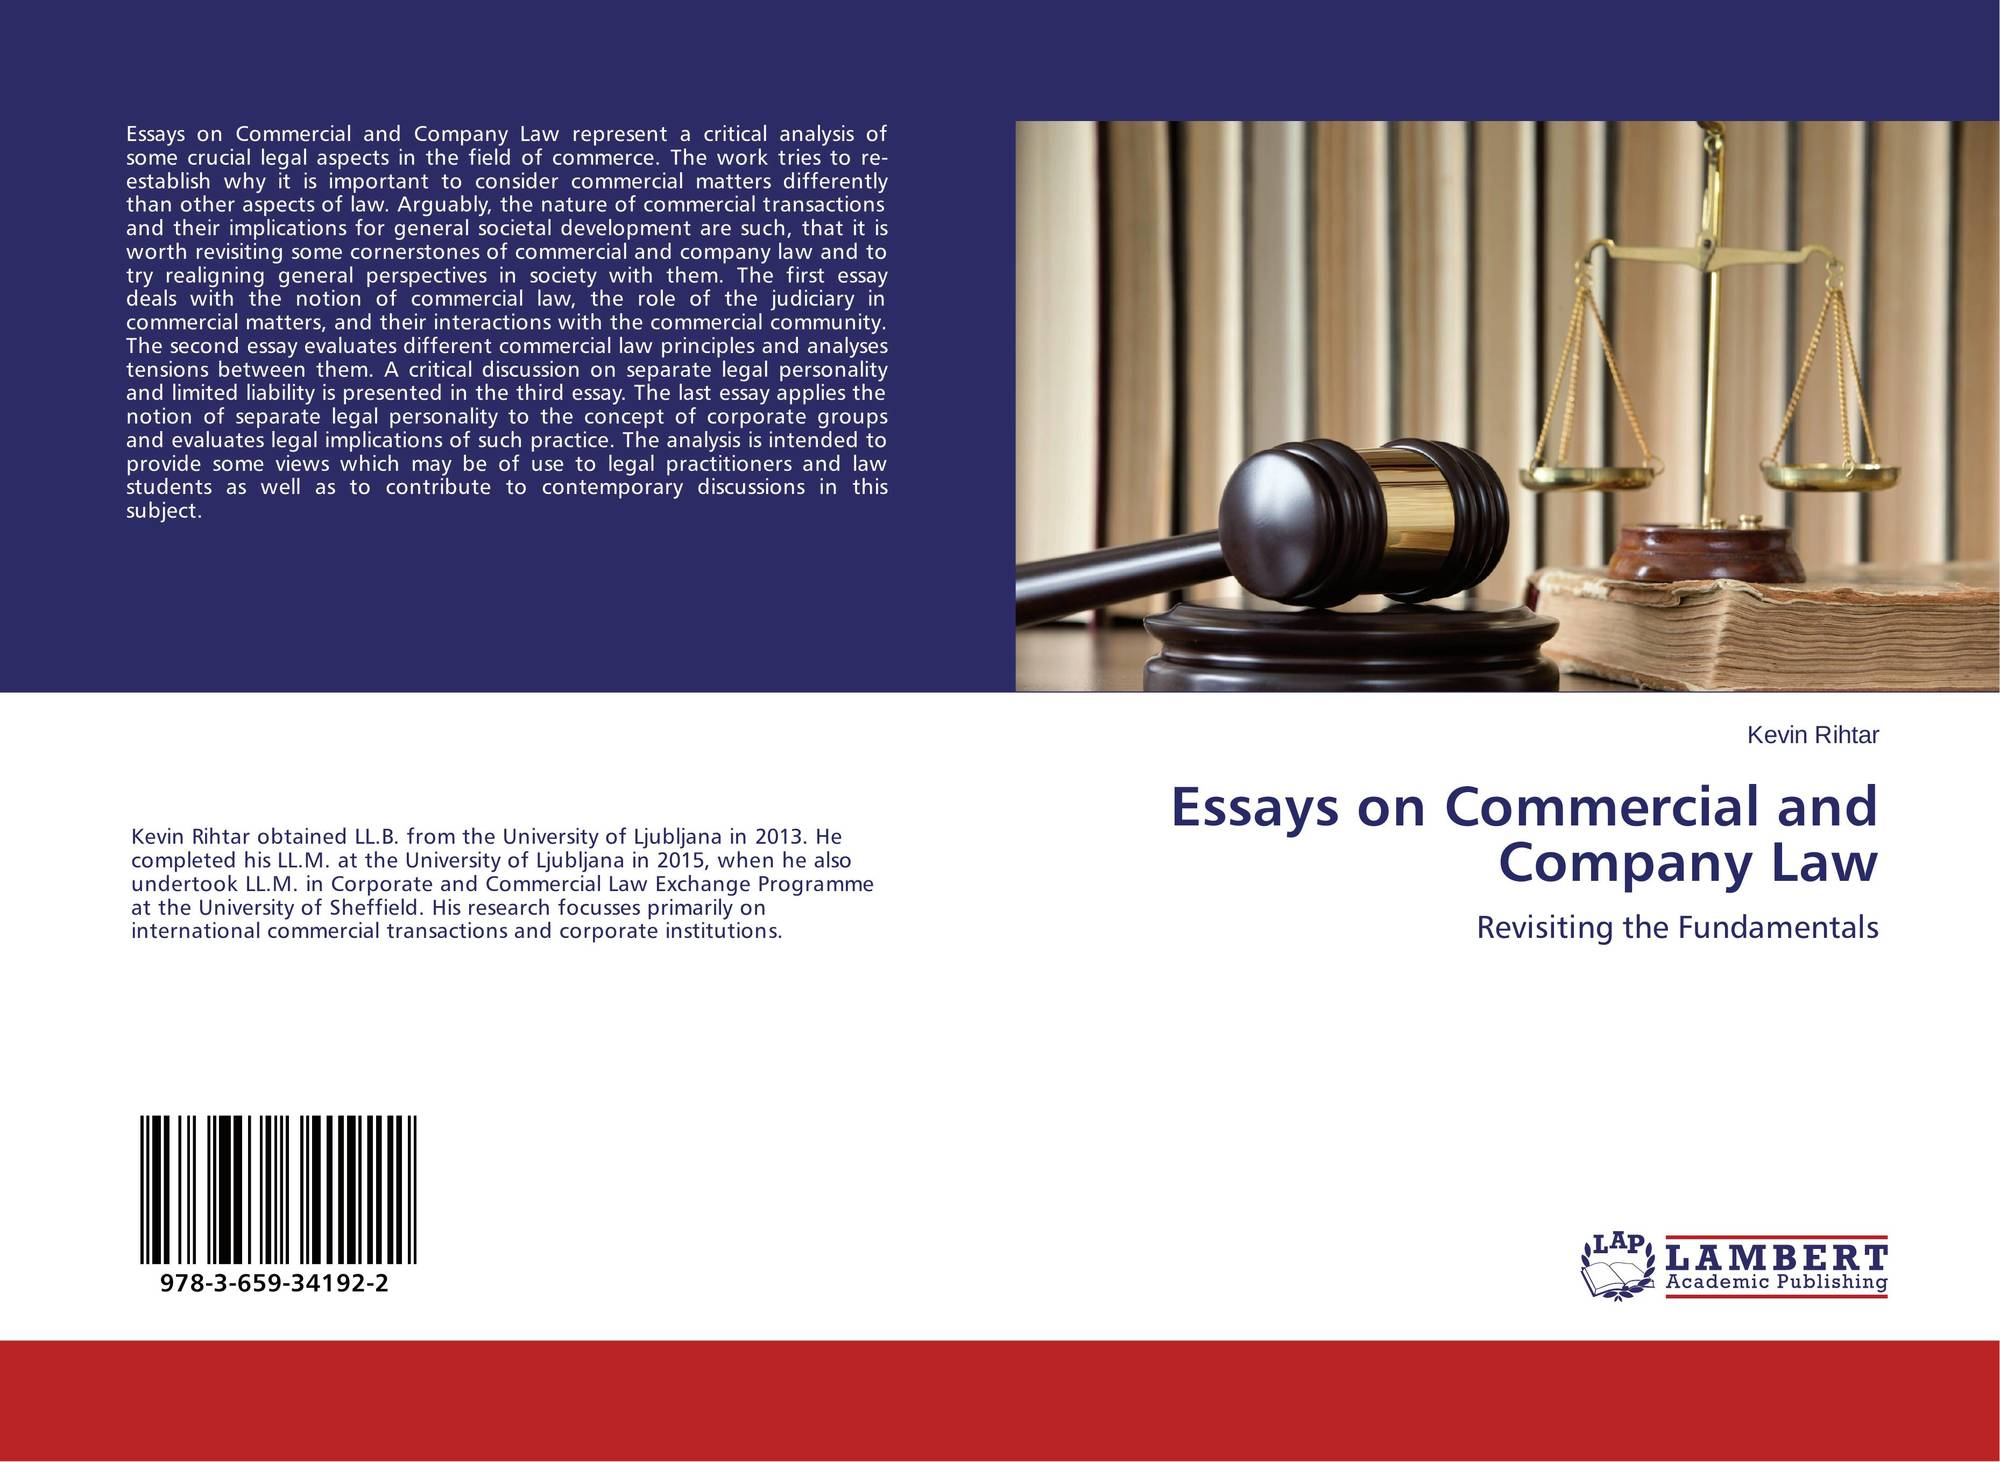 company law essays Question: company law reform act 'it is the case that the uk still has not had a thorough review of the relationship between limited liability and unlimited liability legal forms for small firms and that the llp's role for small firms has not been properly addressed.